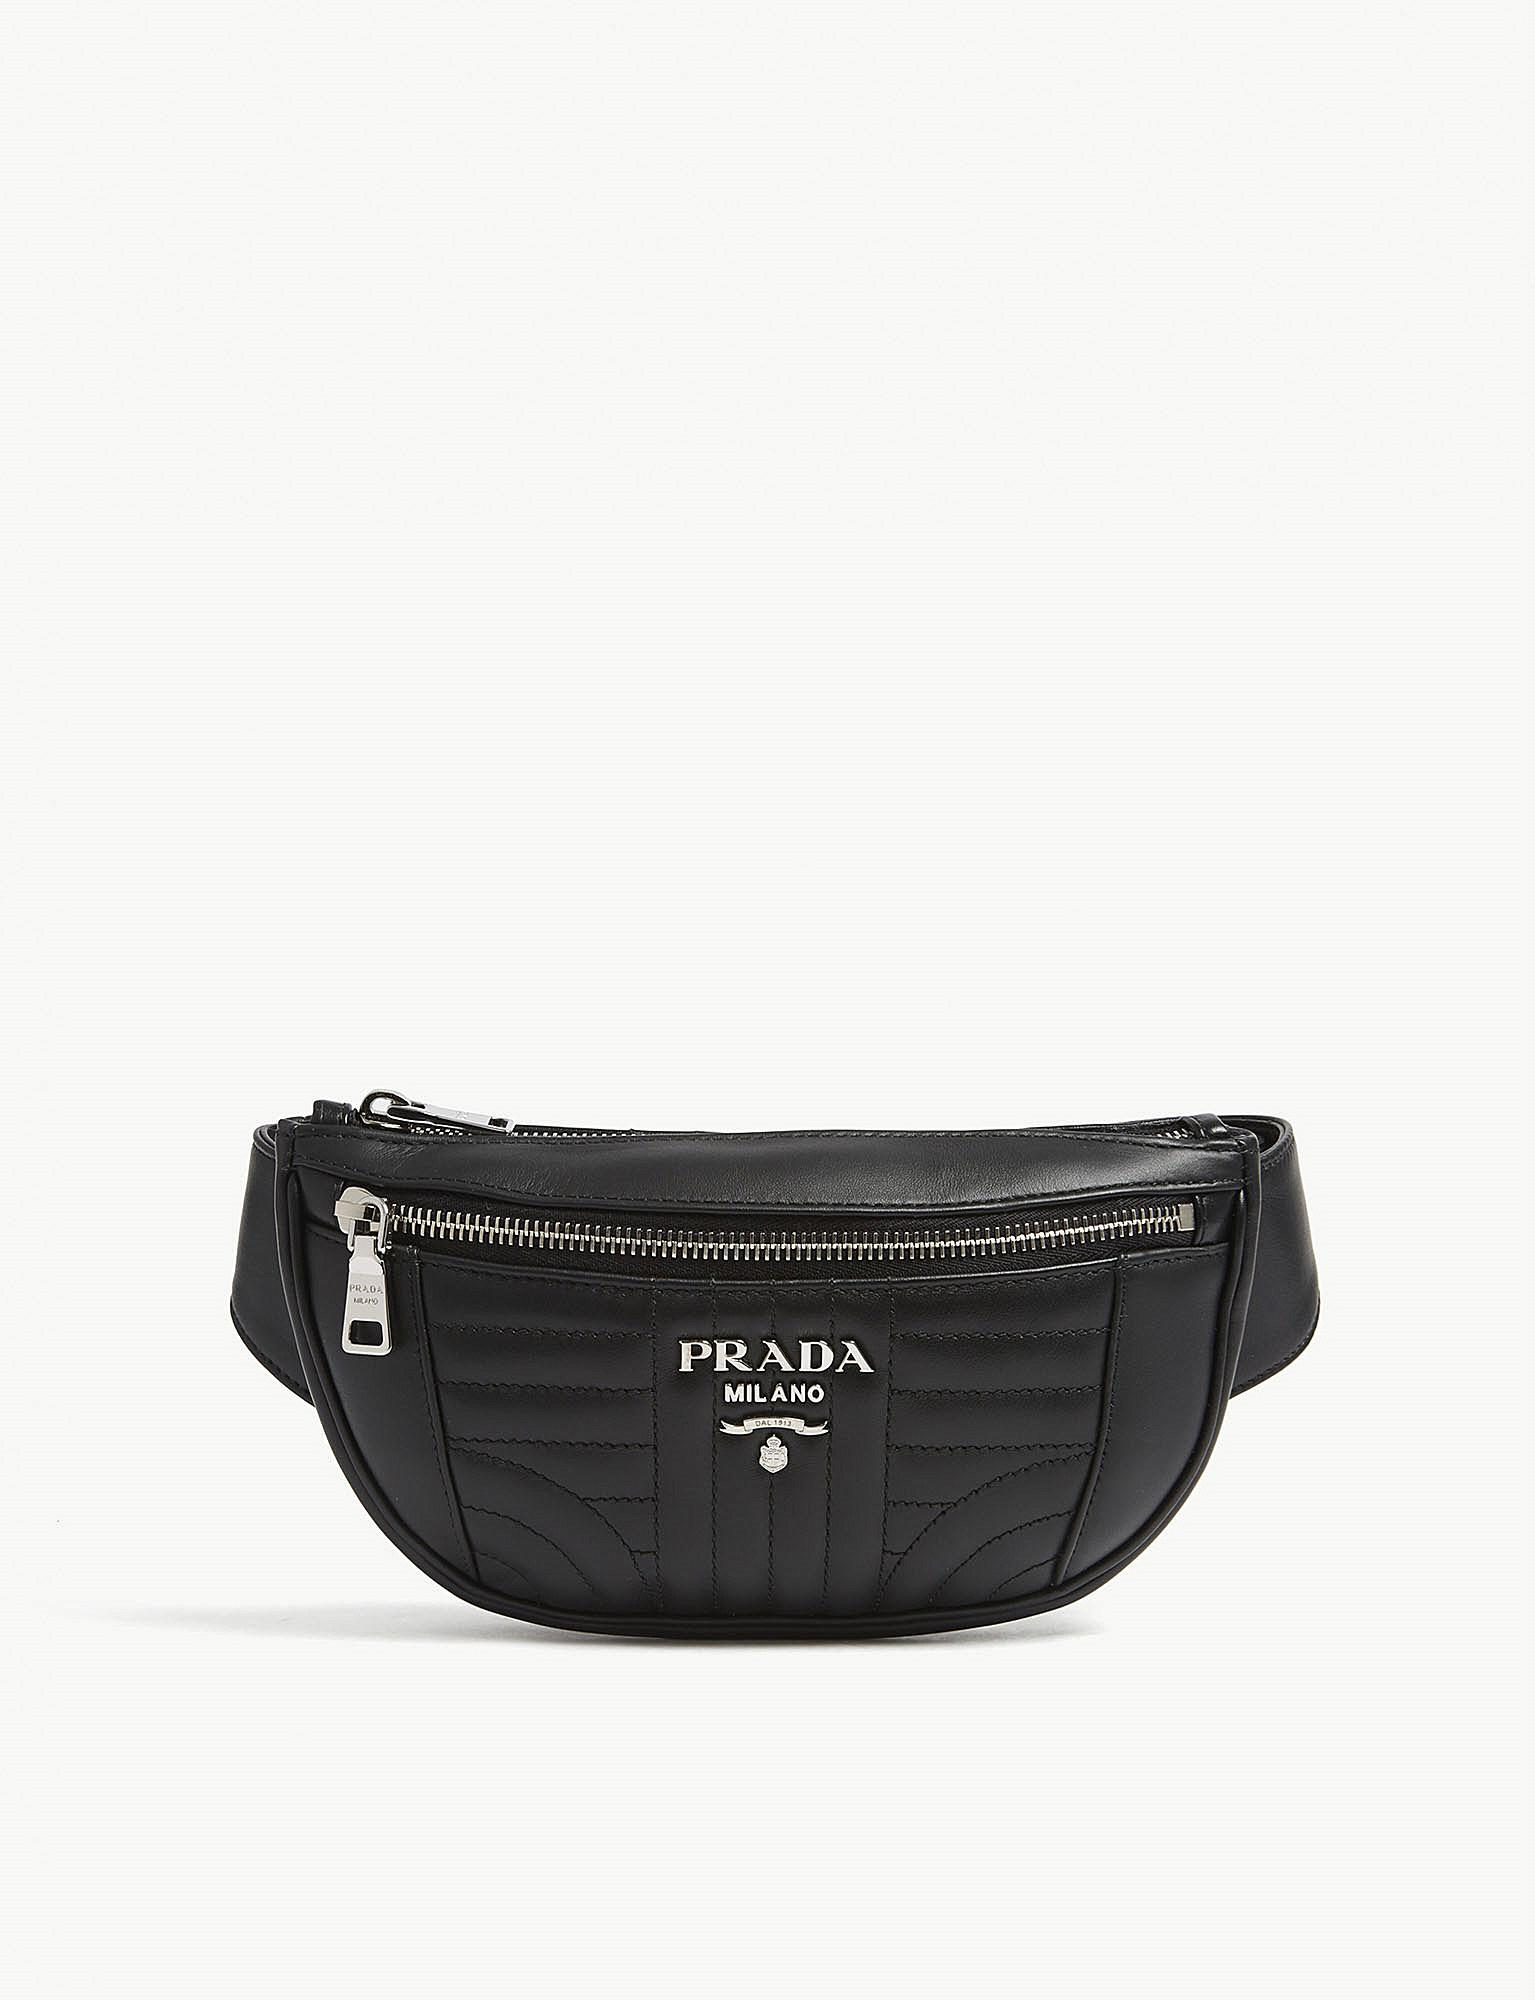 Lyst - Prada Diagramme Quilted Leather Bum Bag in Black for Men